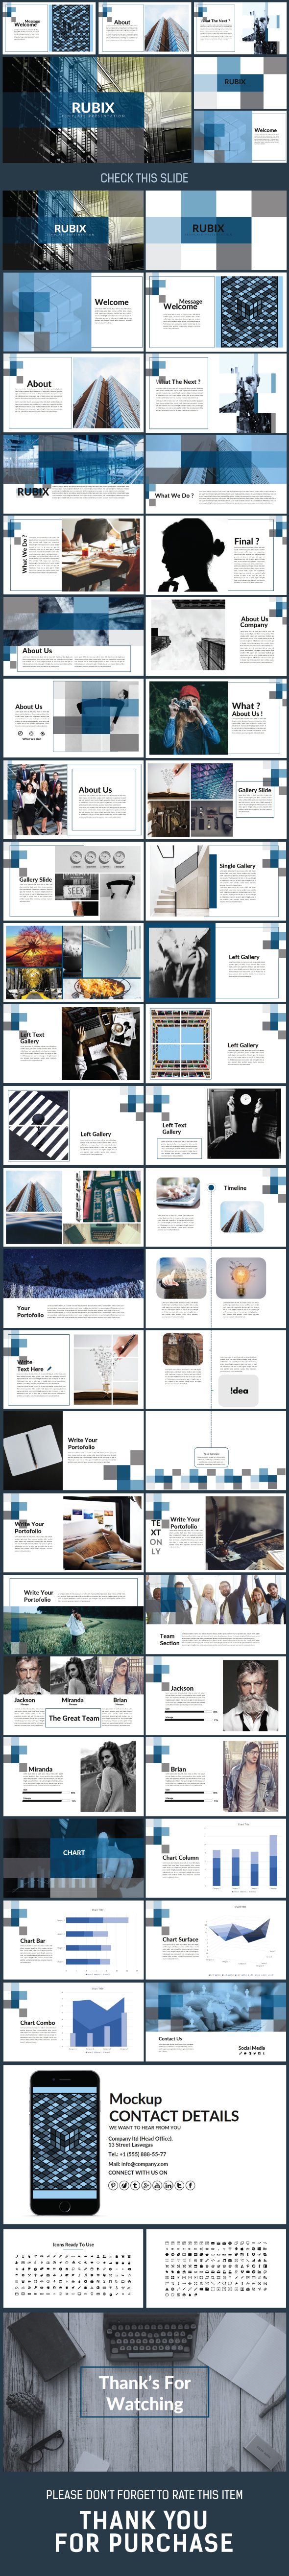 RUBIX Presentation Power Point Template by Slider_Tackle | GraphicRiver